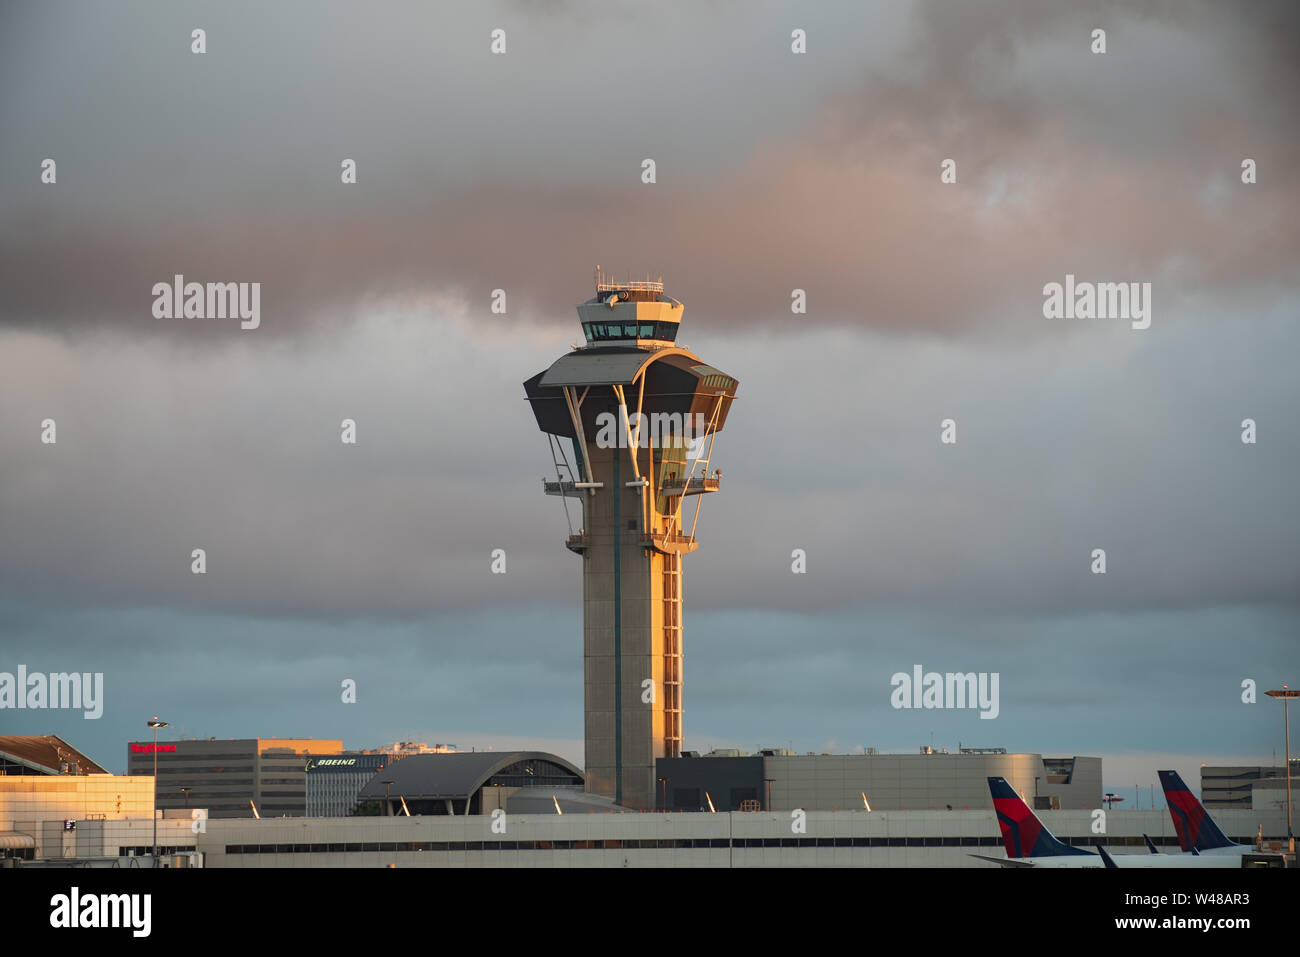 Image showing the Los Angeles International Airport, LAX, control tower. Stock Photo